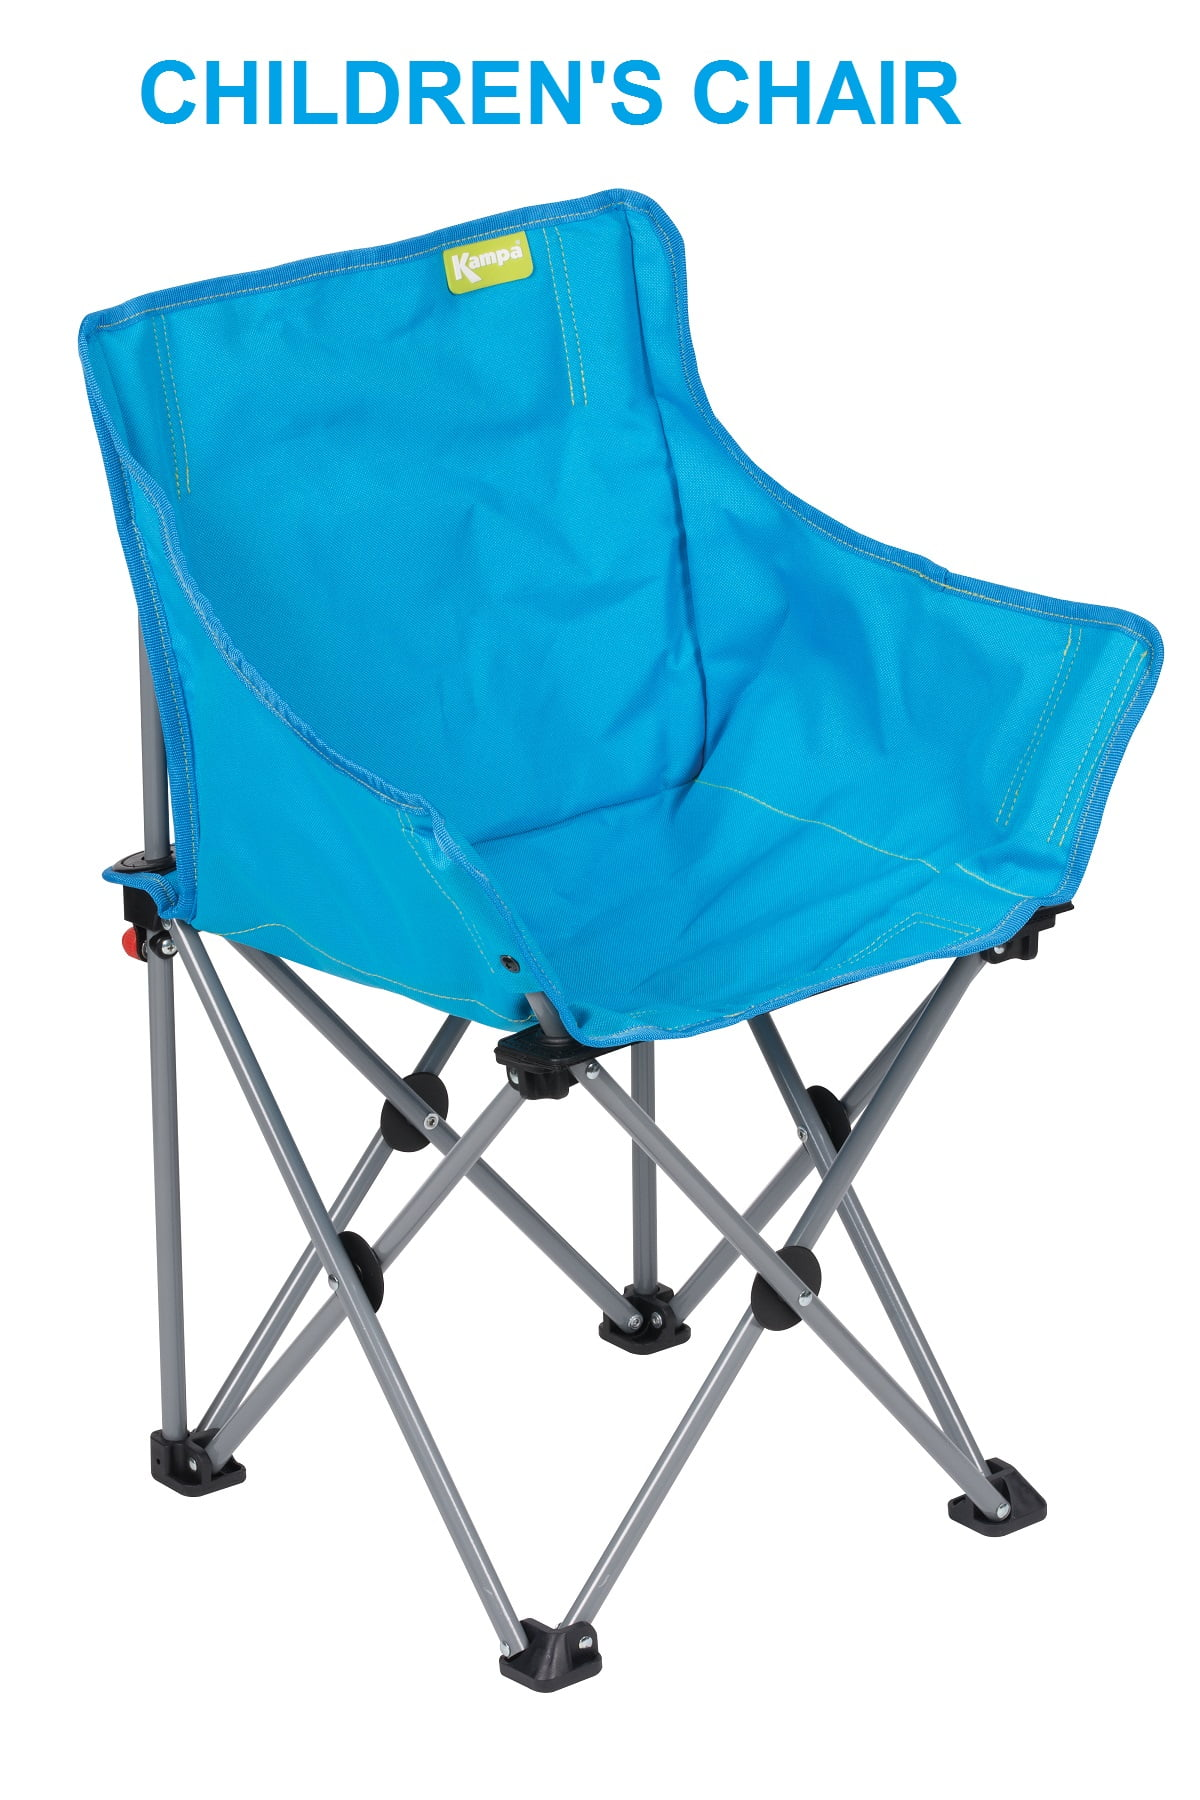 K&a Mini Tub Chair ...  sc 1 st  Magnum Motorhomes & Kampa Mini Tub Chair - Kids - Magnum Motorhomes